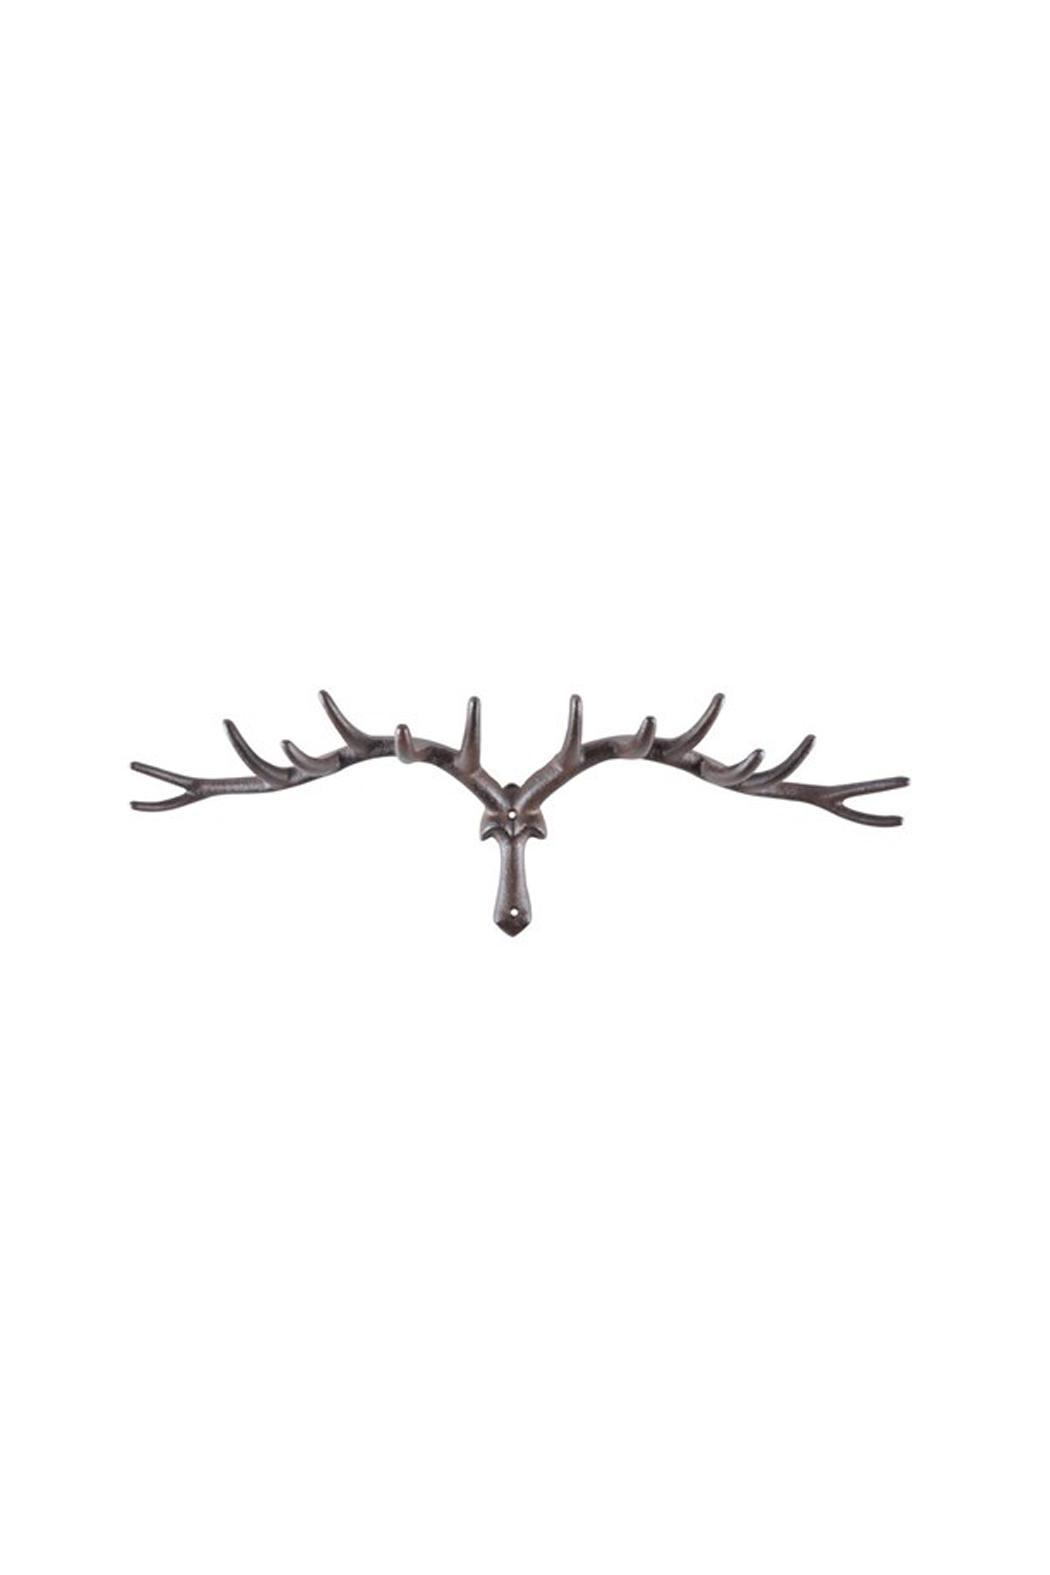 North American Country Home Antler Coat Rack - Main Image